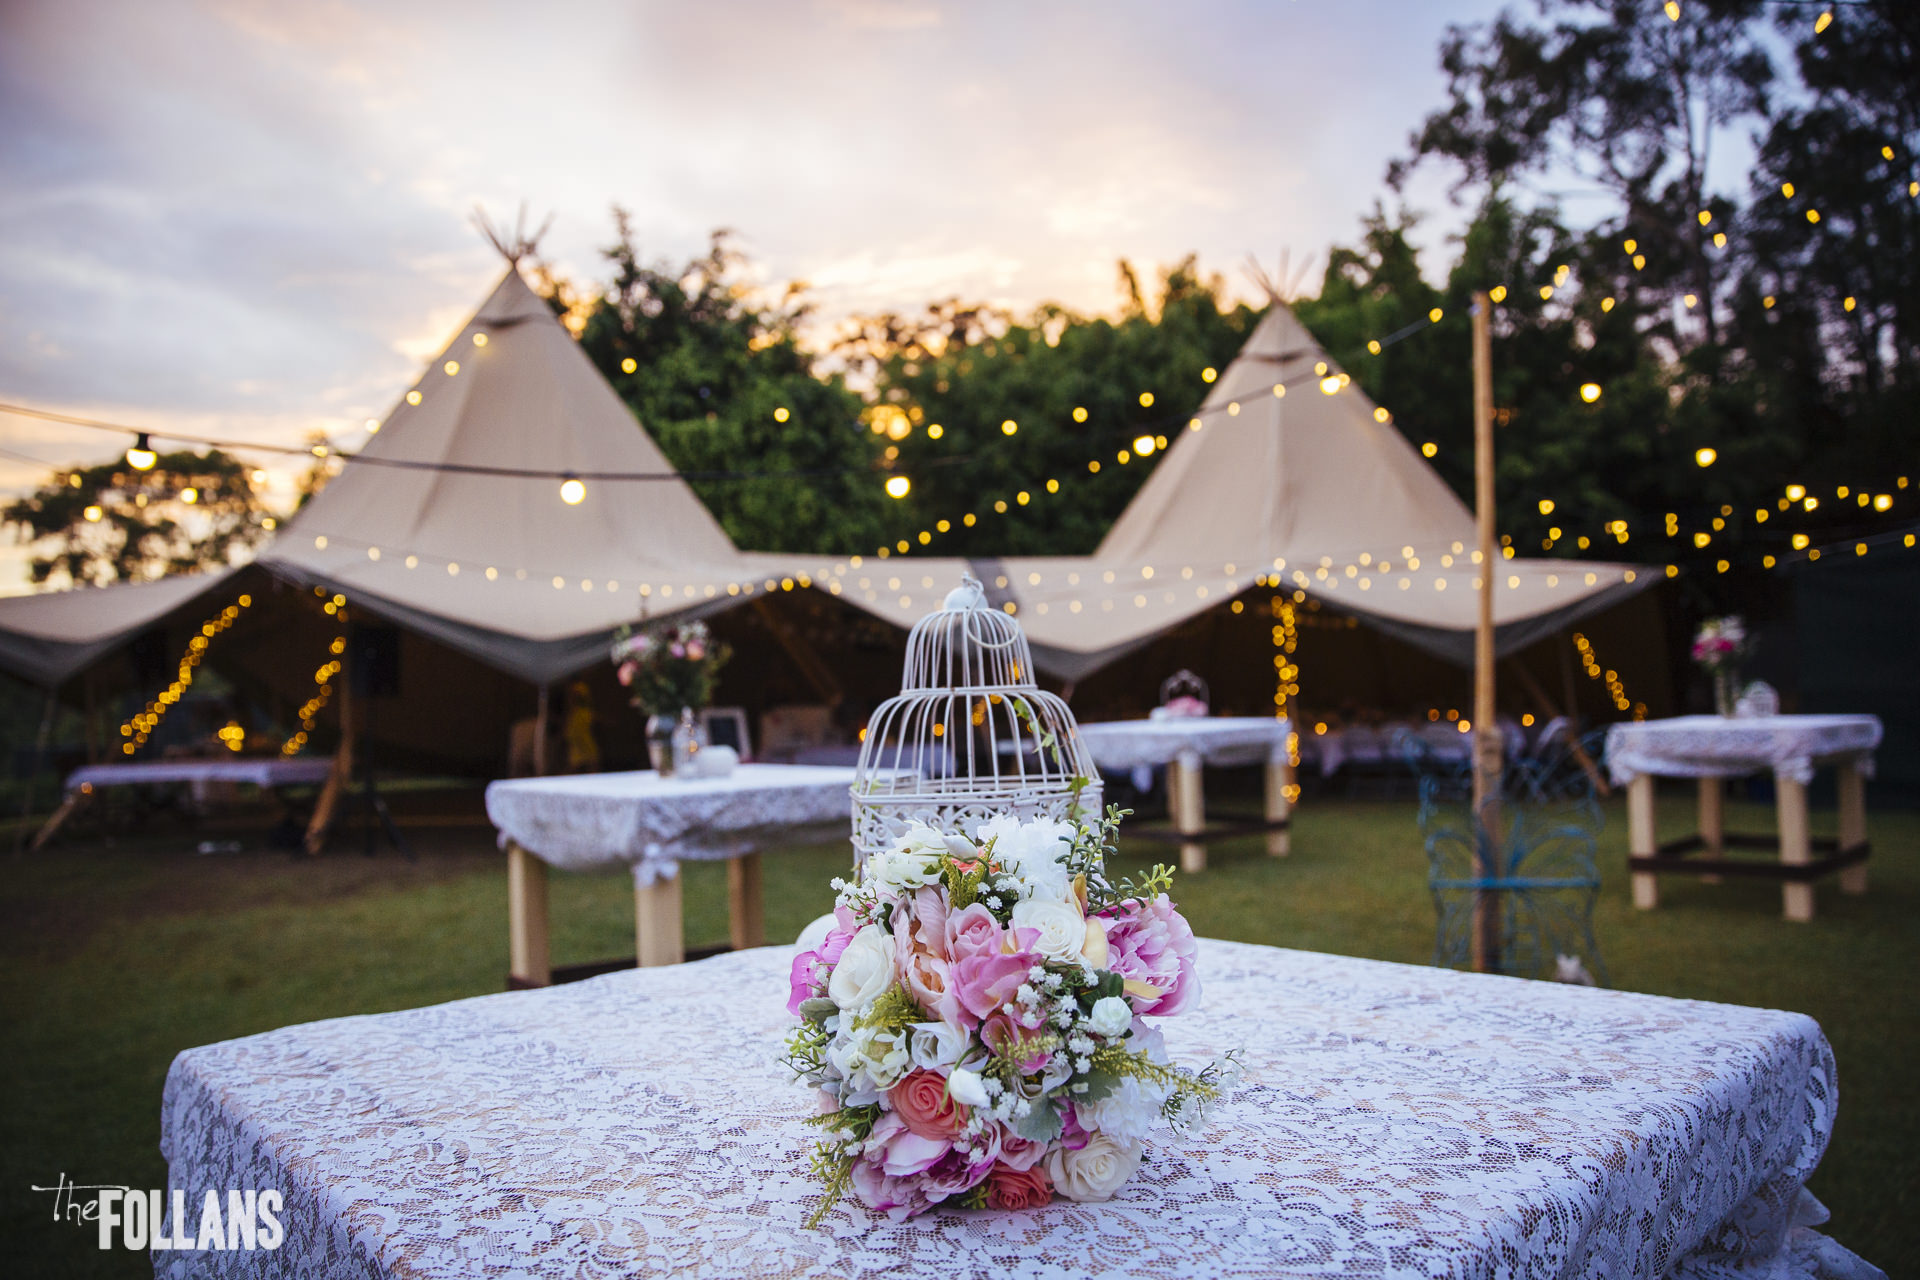 Blog gold coast tipis vintage theme wedding tipi marquee hire gold coast junglespirit Image collections